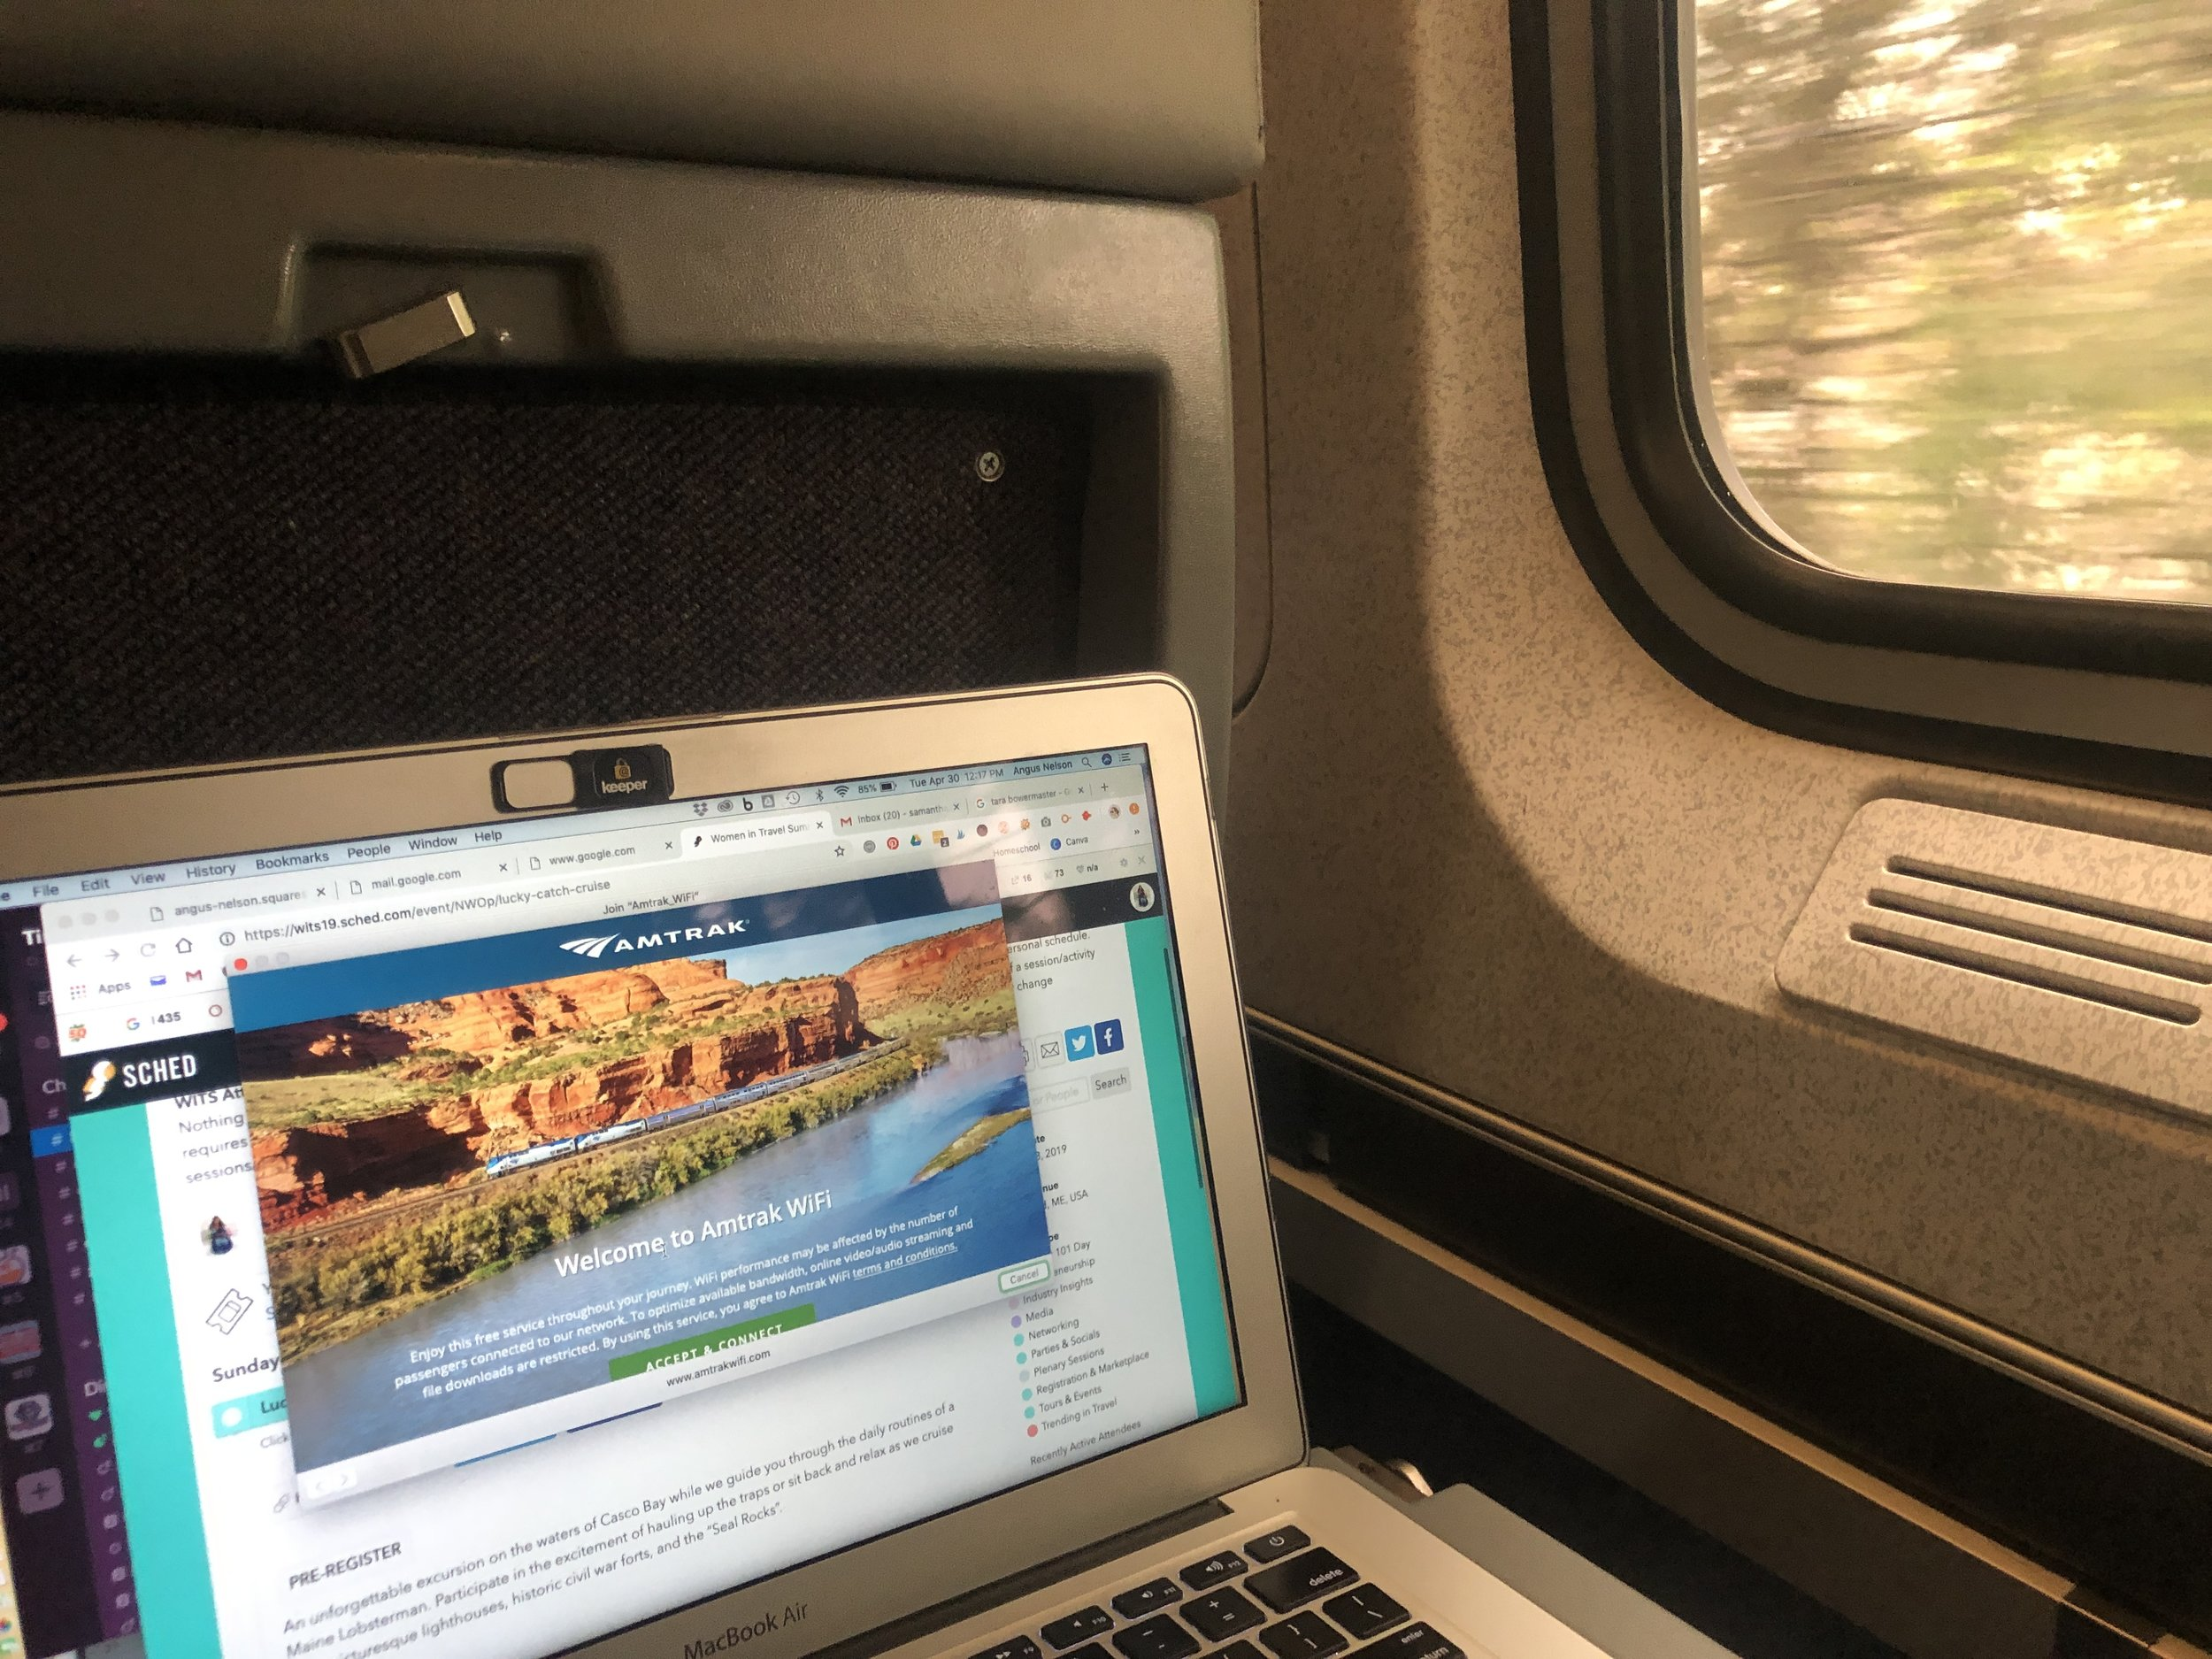 See Maine by train in 4 nights, Amtrak's Downeaster pics